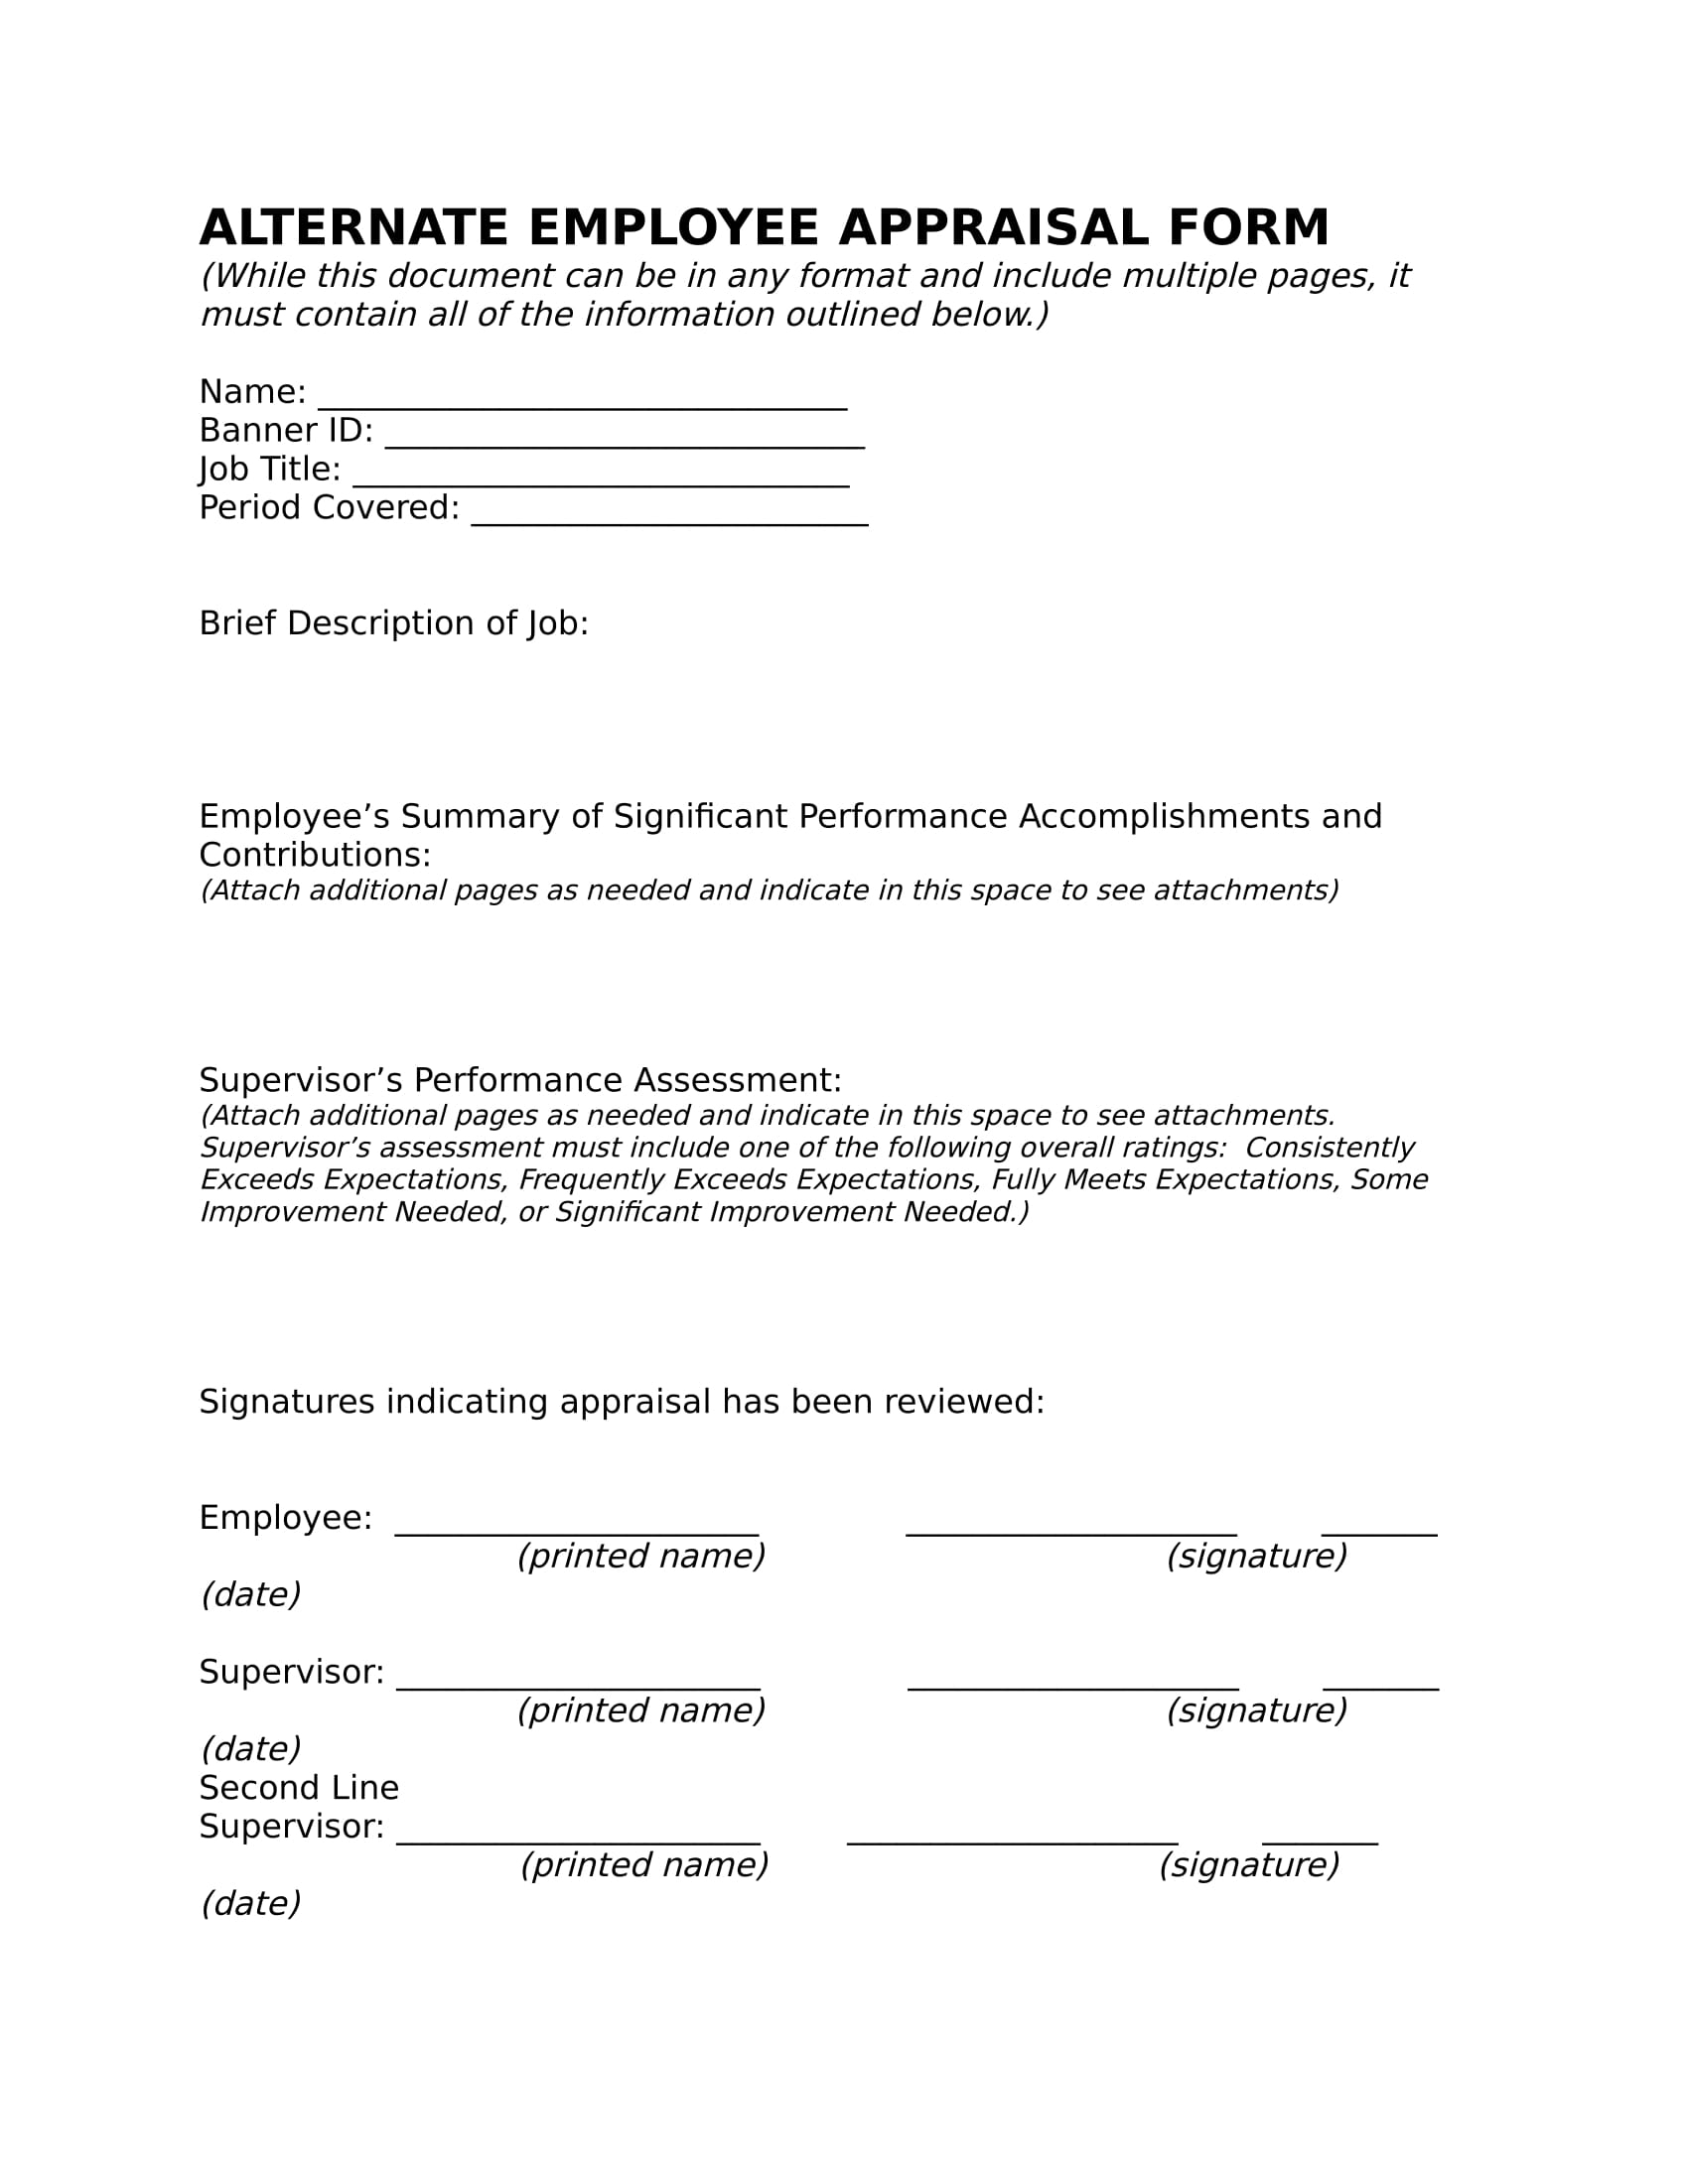 14 employee appraisal forms free word pdf xls format download alternate employee appraisal form falaconquin